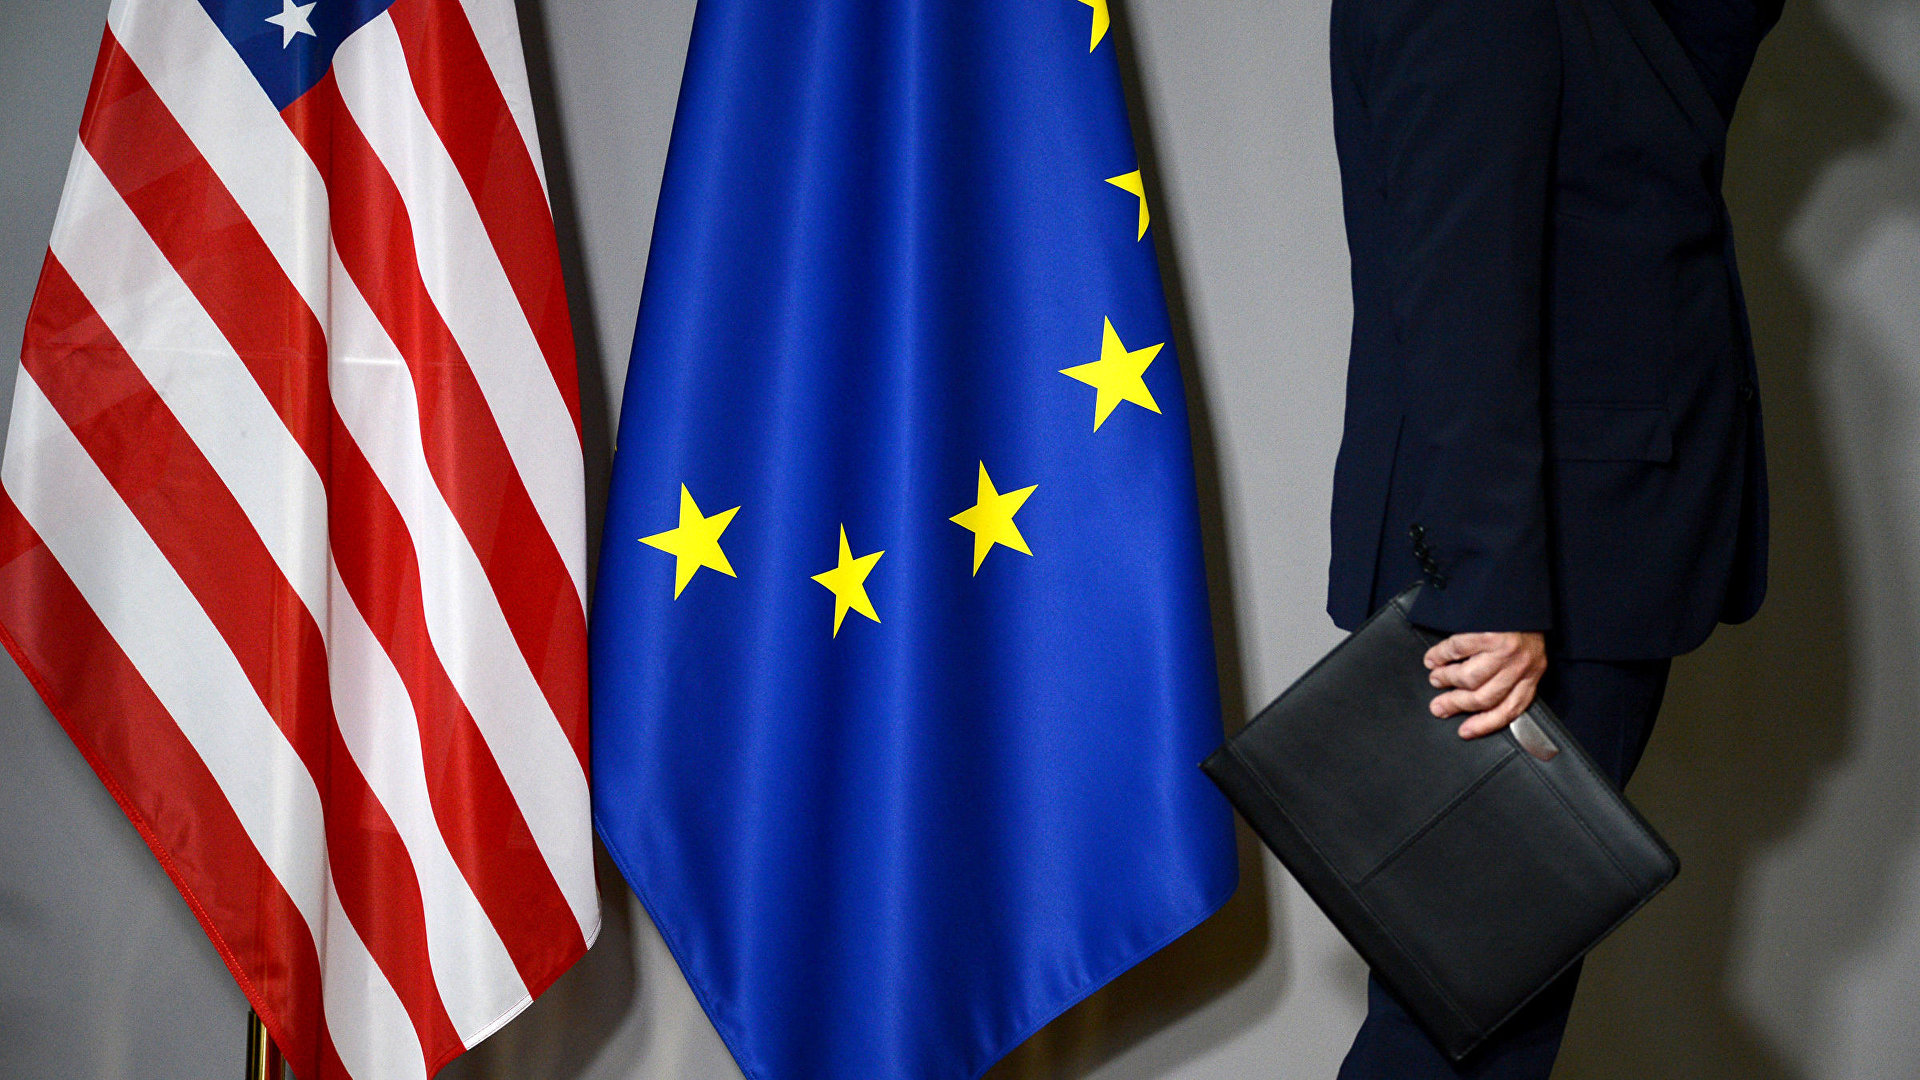 Europe is angry with Biden - did not consult, offering a meeting with Putin. Daily Express, UK